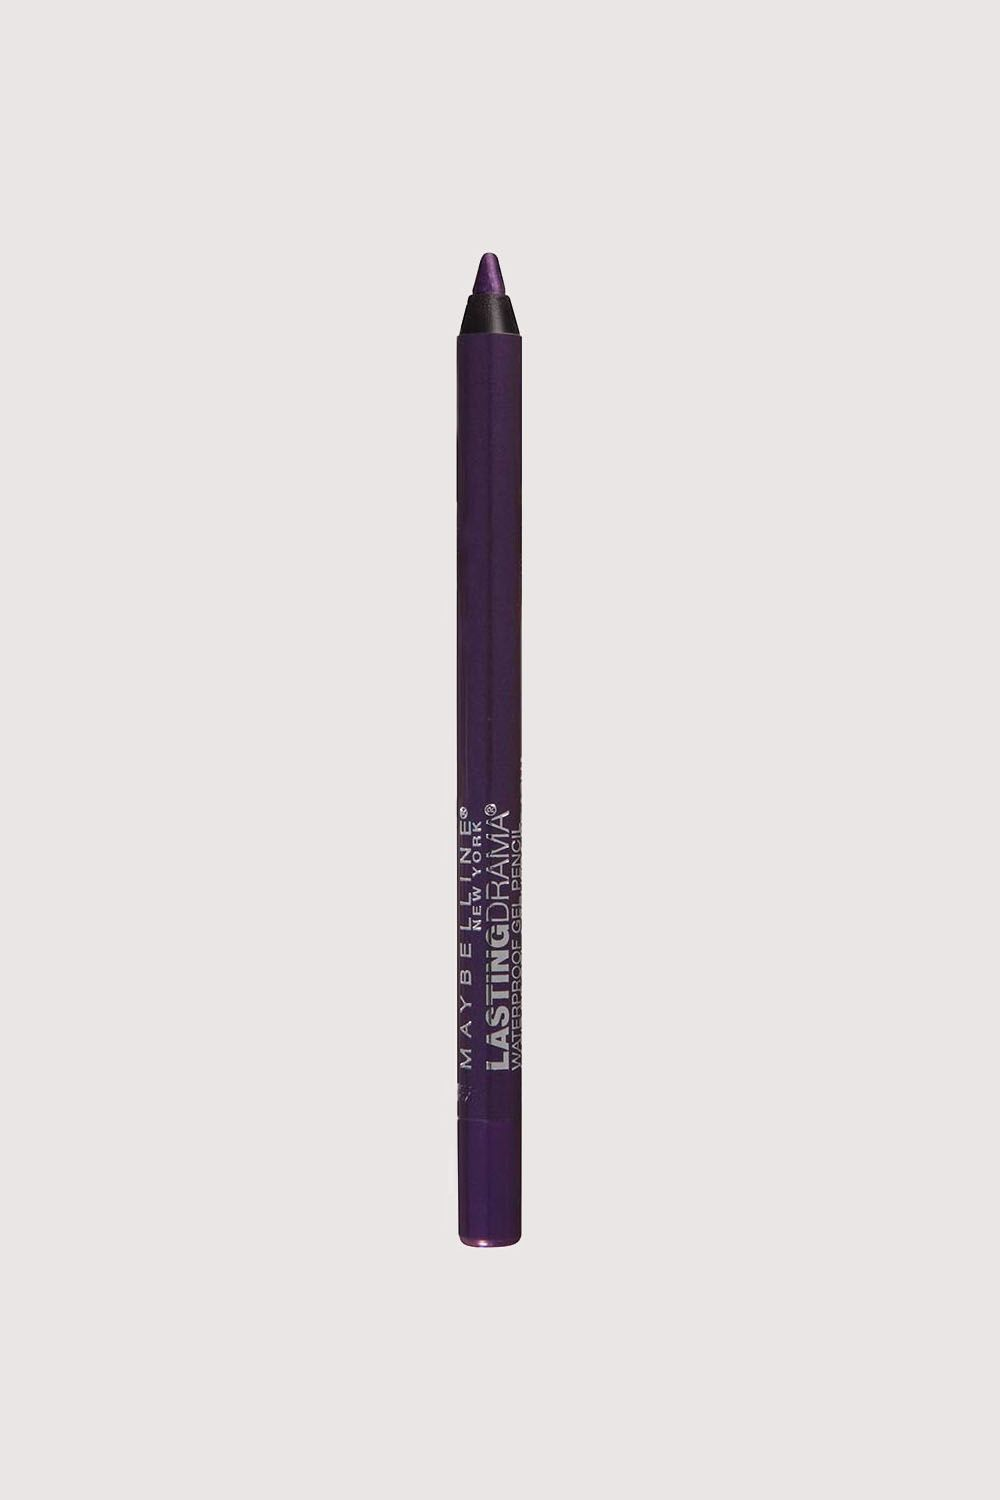 "<p>Eggplant purple is universally flattering—especially if you fall into the brown, green, or hazel eye color range—and you can elevate your look in seconds by <a href=""http://www.marieclaire.com/beauty/news/a18851/tightlining-tips/"" target=""_blank"" data-tracking-id=""recirc-text-link"">tightlining</a> with this silky formula.</p><p><strong data-redactor-tag=""strong"" data-verified=""redactor"">Maybelline Eyestudio Lasting Drama Waterproof Eye Pencil in Polished Amethyst, $7.99&#x3B;&nbsp&#x3B;<a href=""http://bit.ly/2nHHIYc"" target=""_blank"" data-tracking-id=""recirc-text-link"">target.com</a>.</strong></p>"